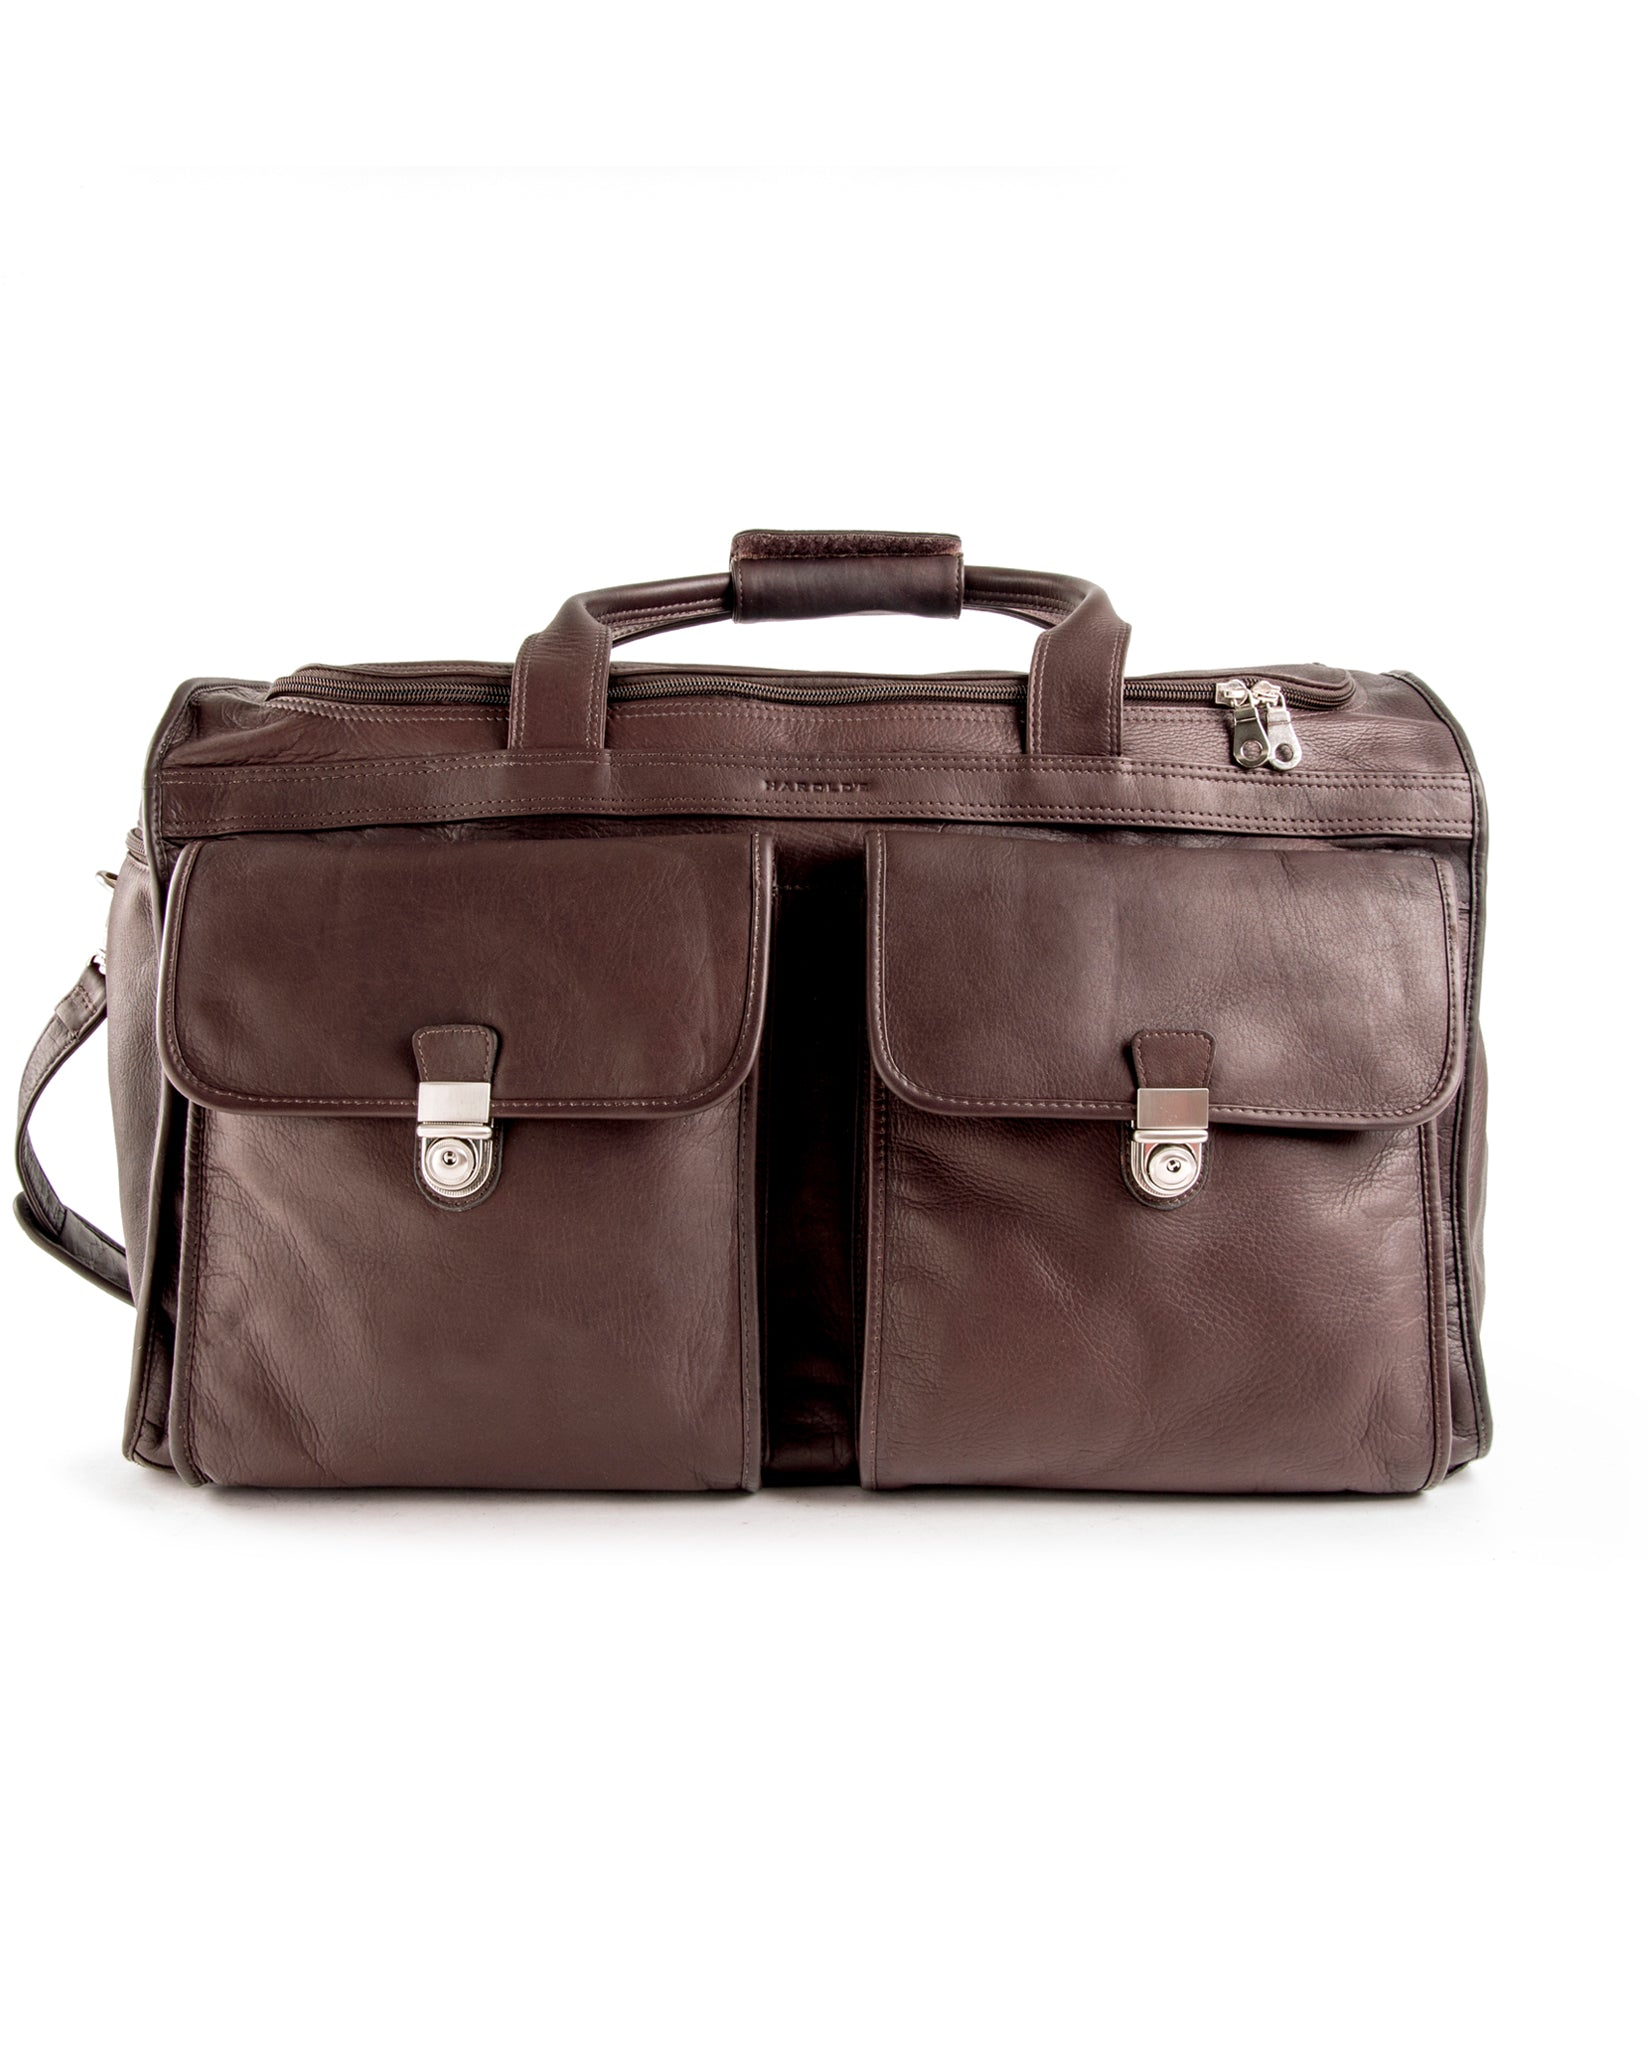 Country Travelbag  M